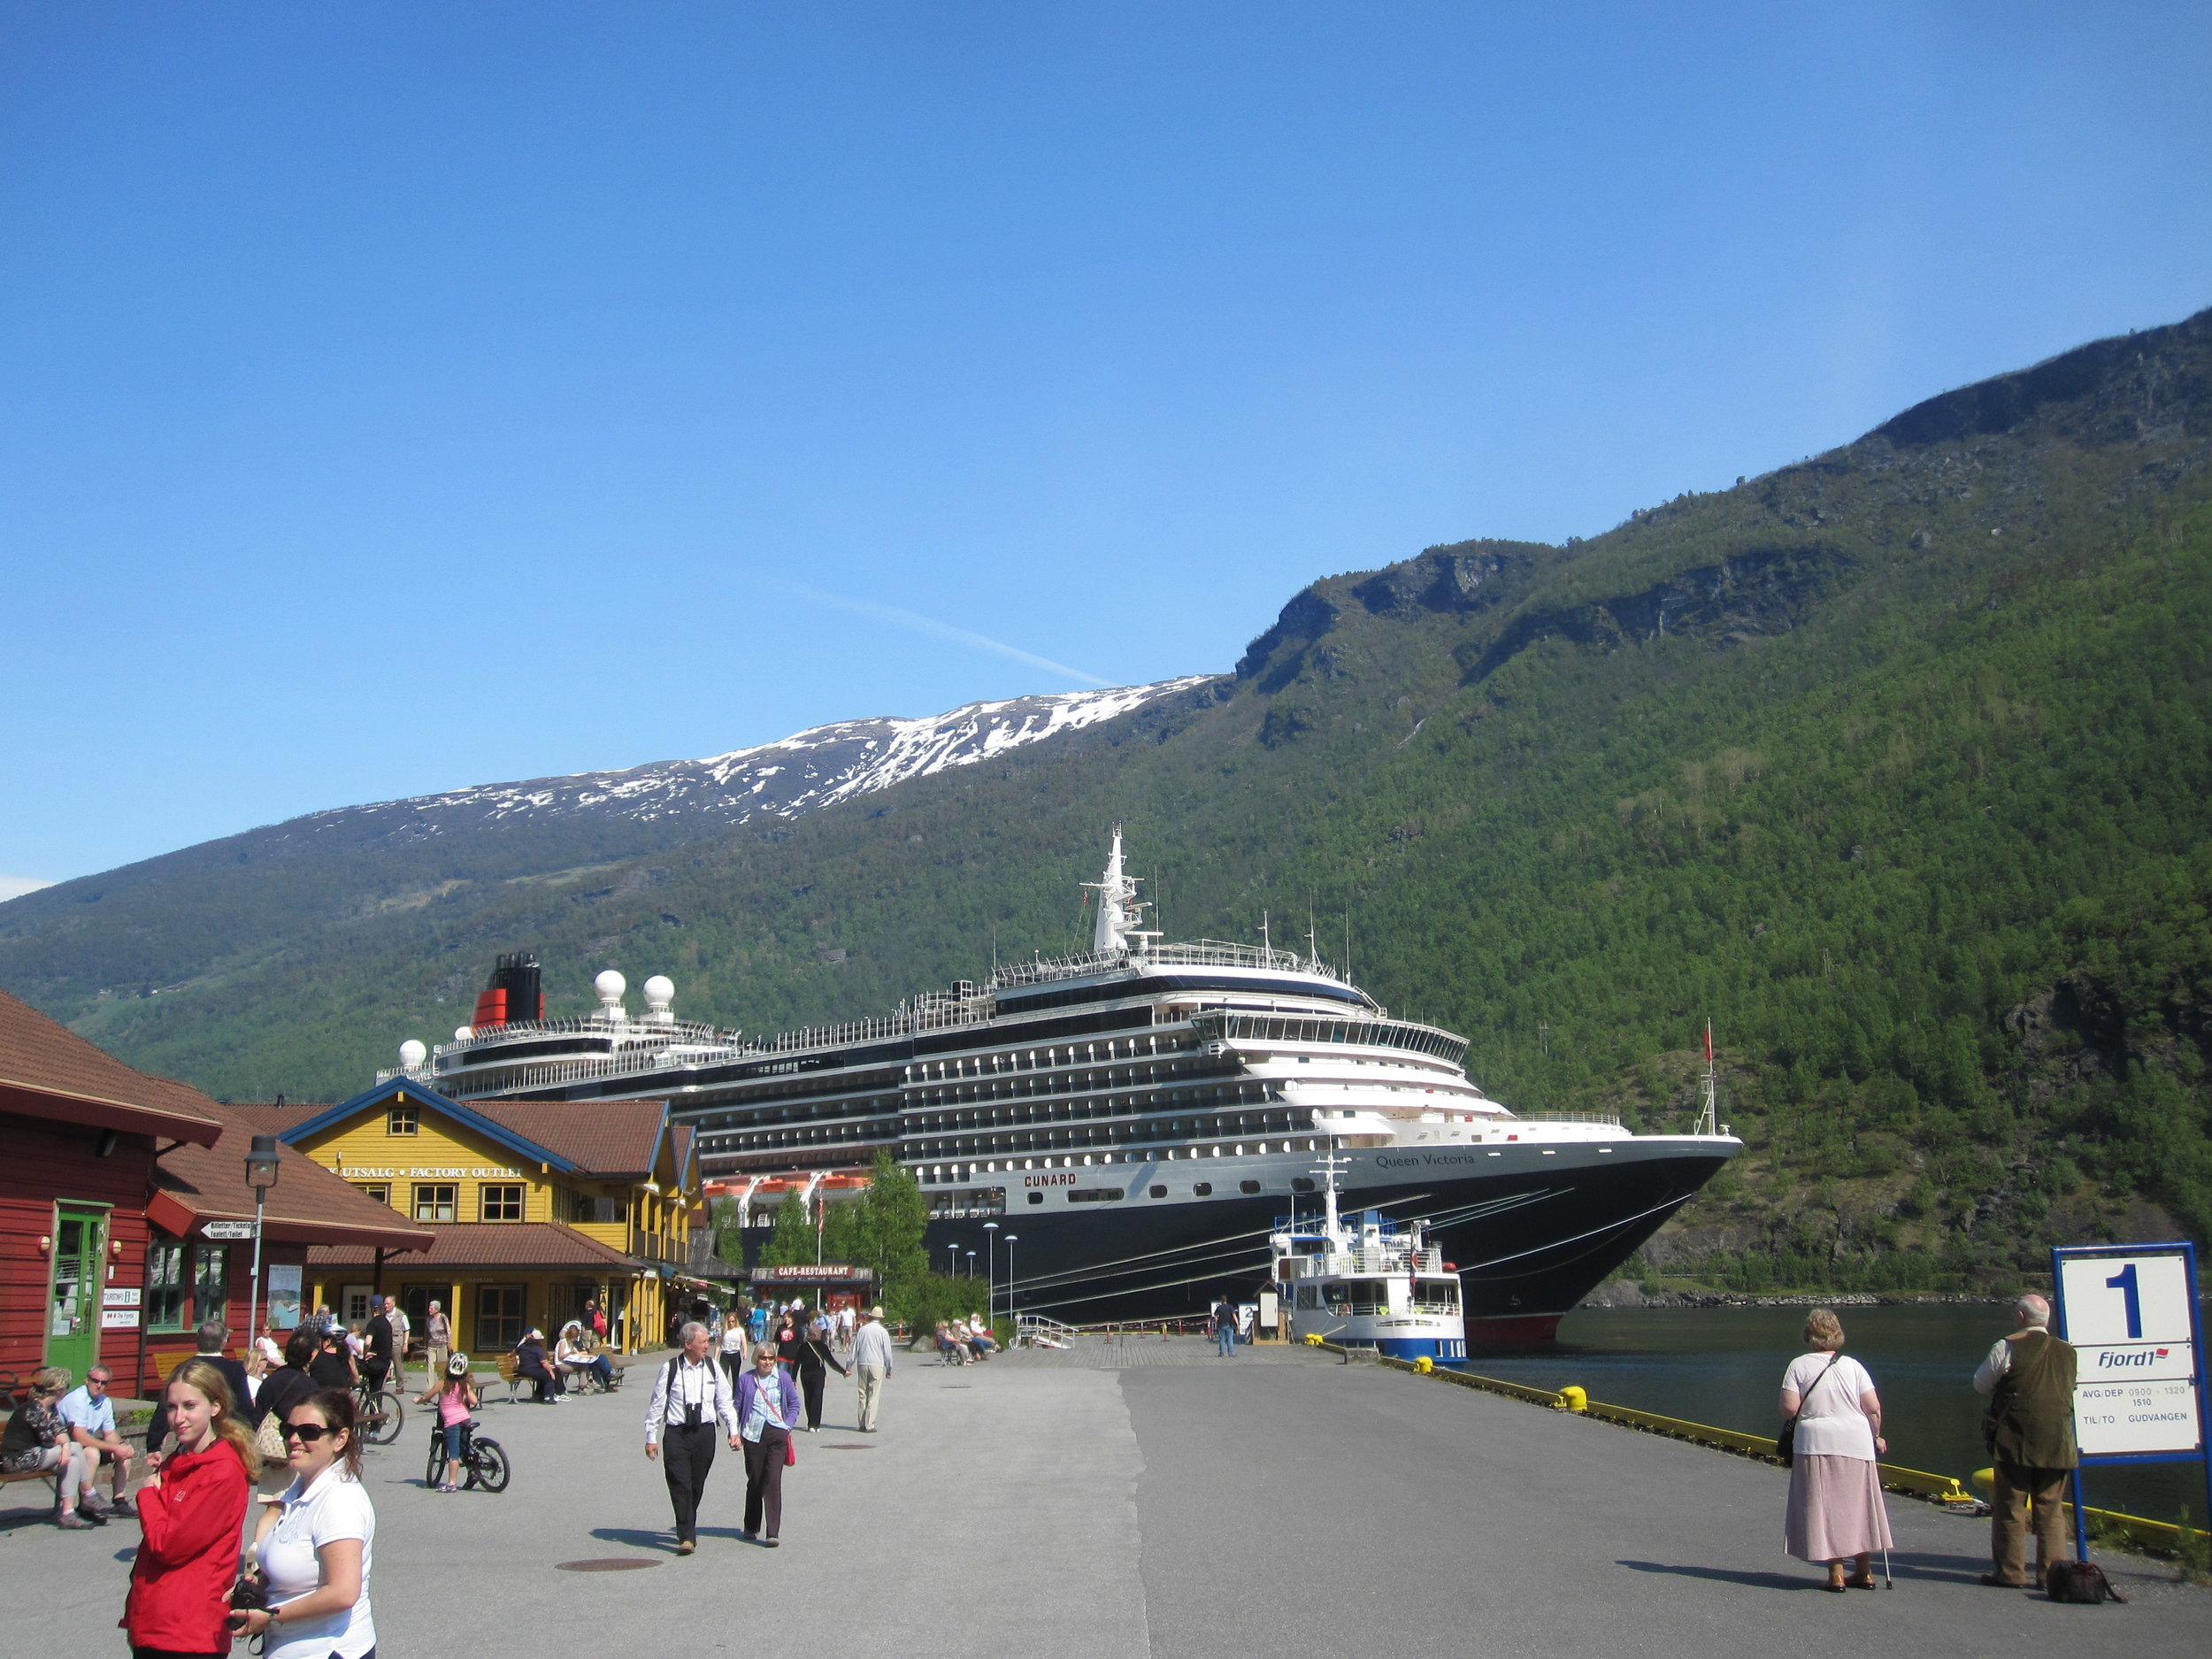 Flåm is regularly visited by large cruise ships